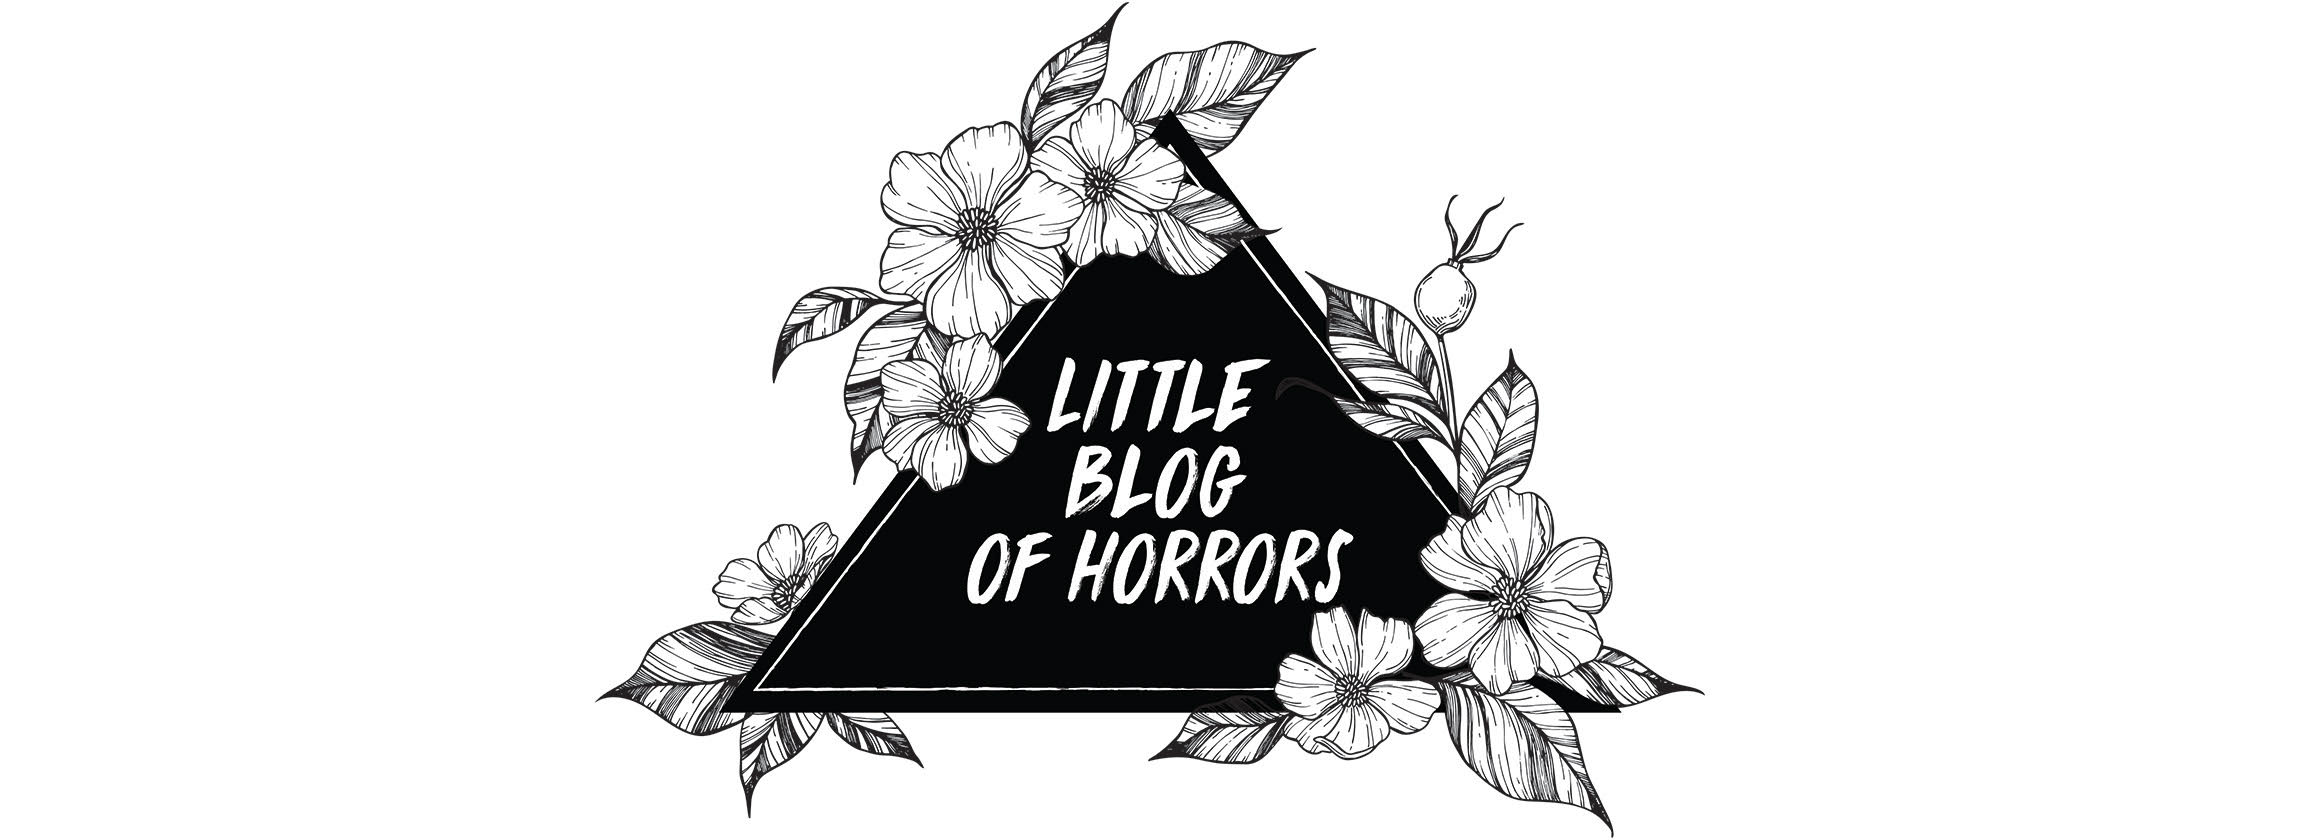 Little Blog Of Horrors